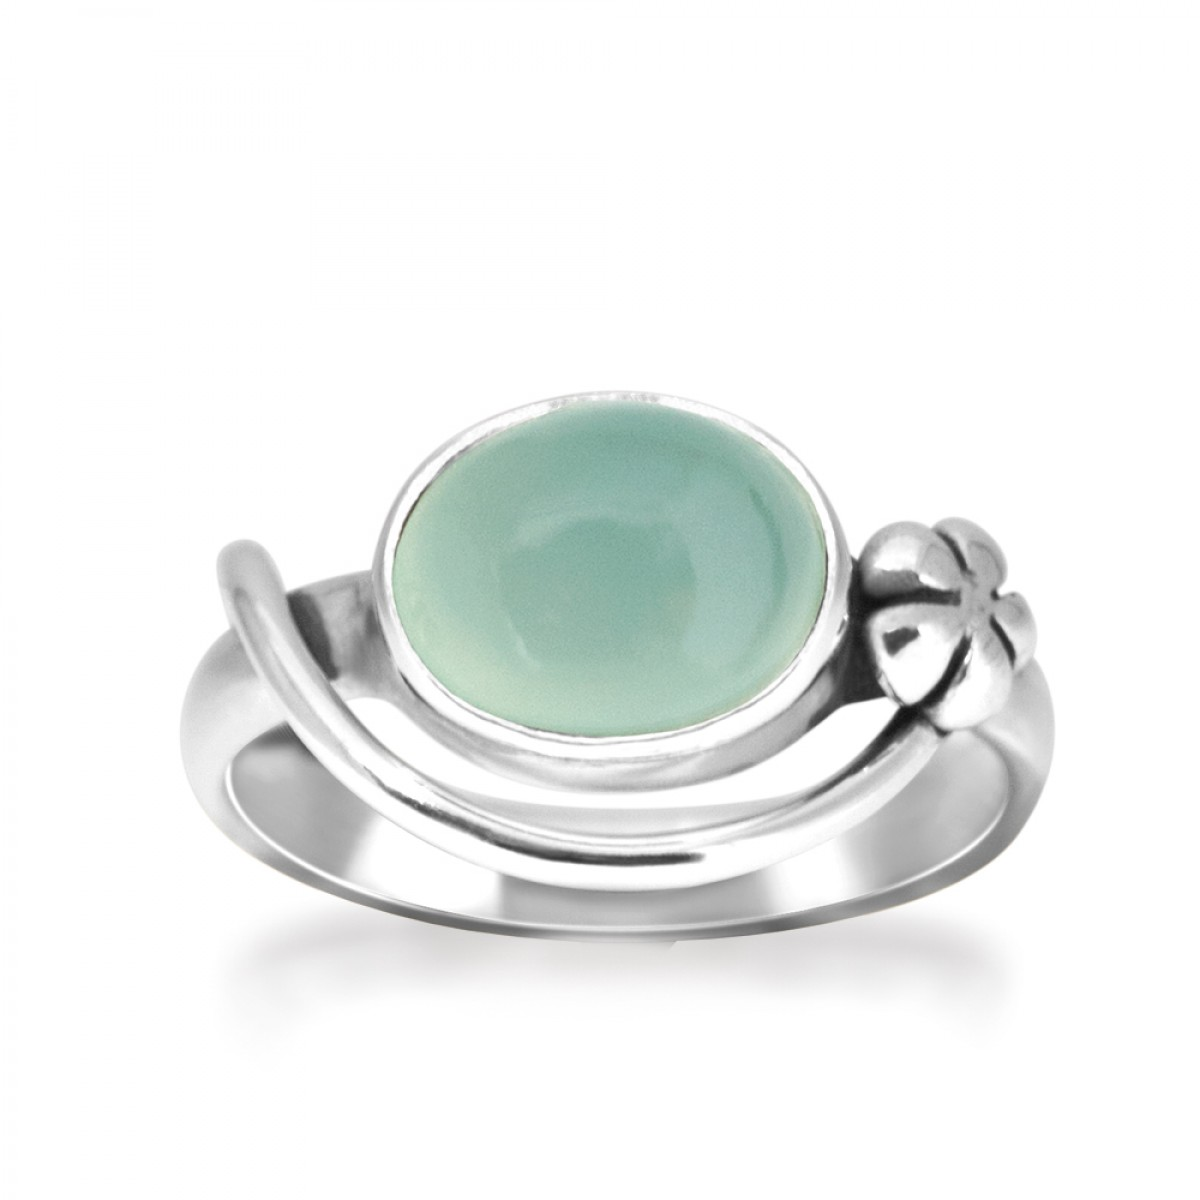 Rabinovich Blurred Blue Ring sølv med chalcedon-3